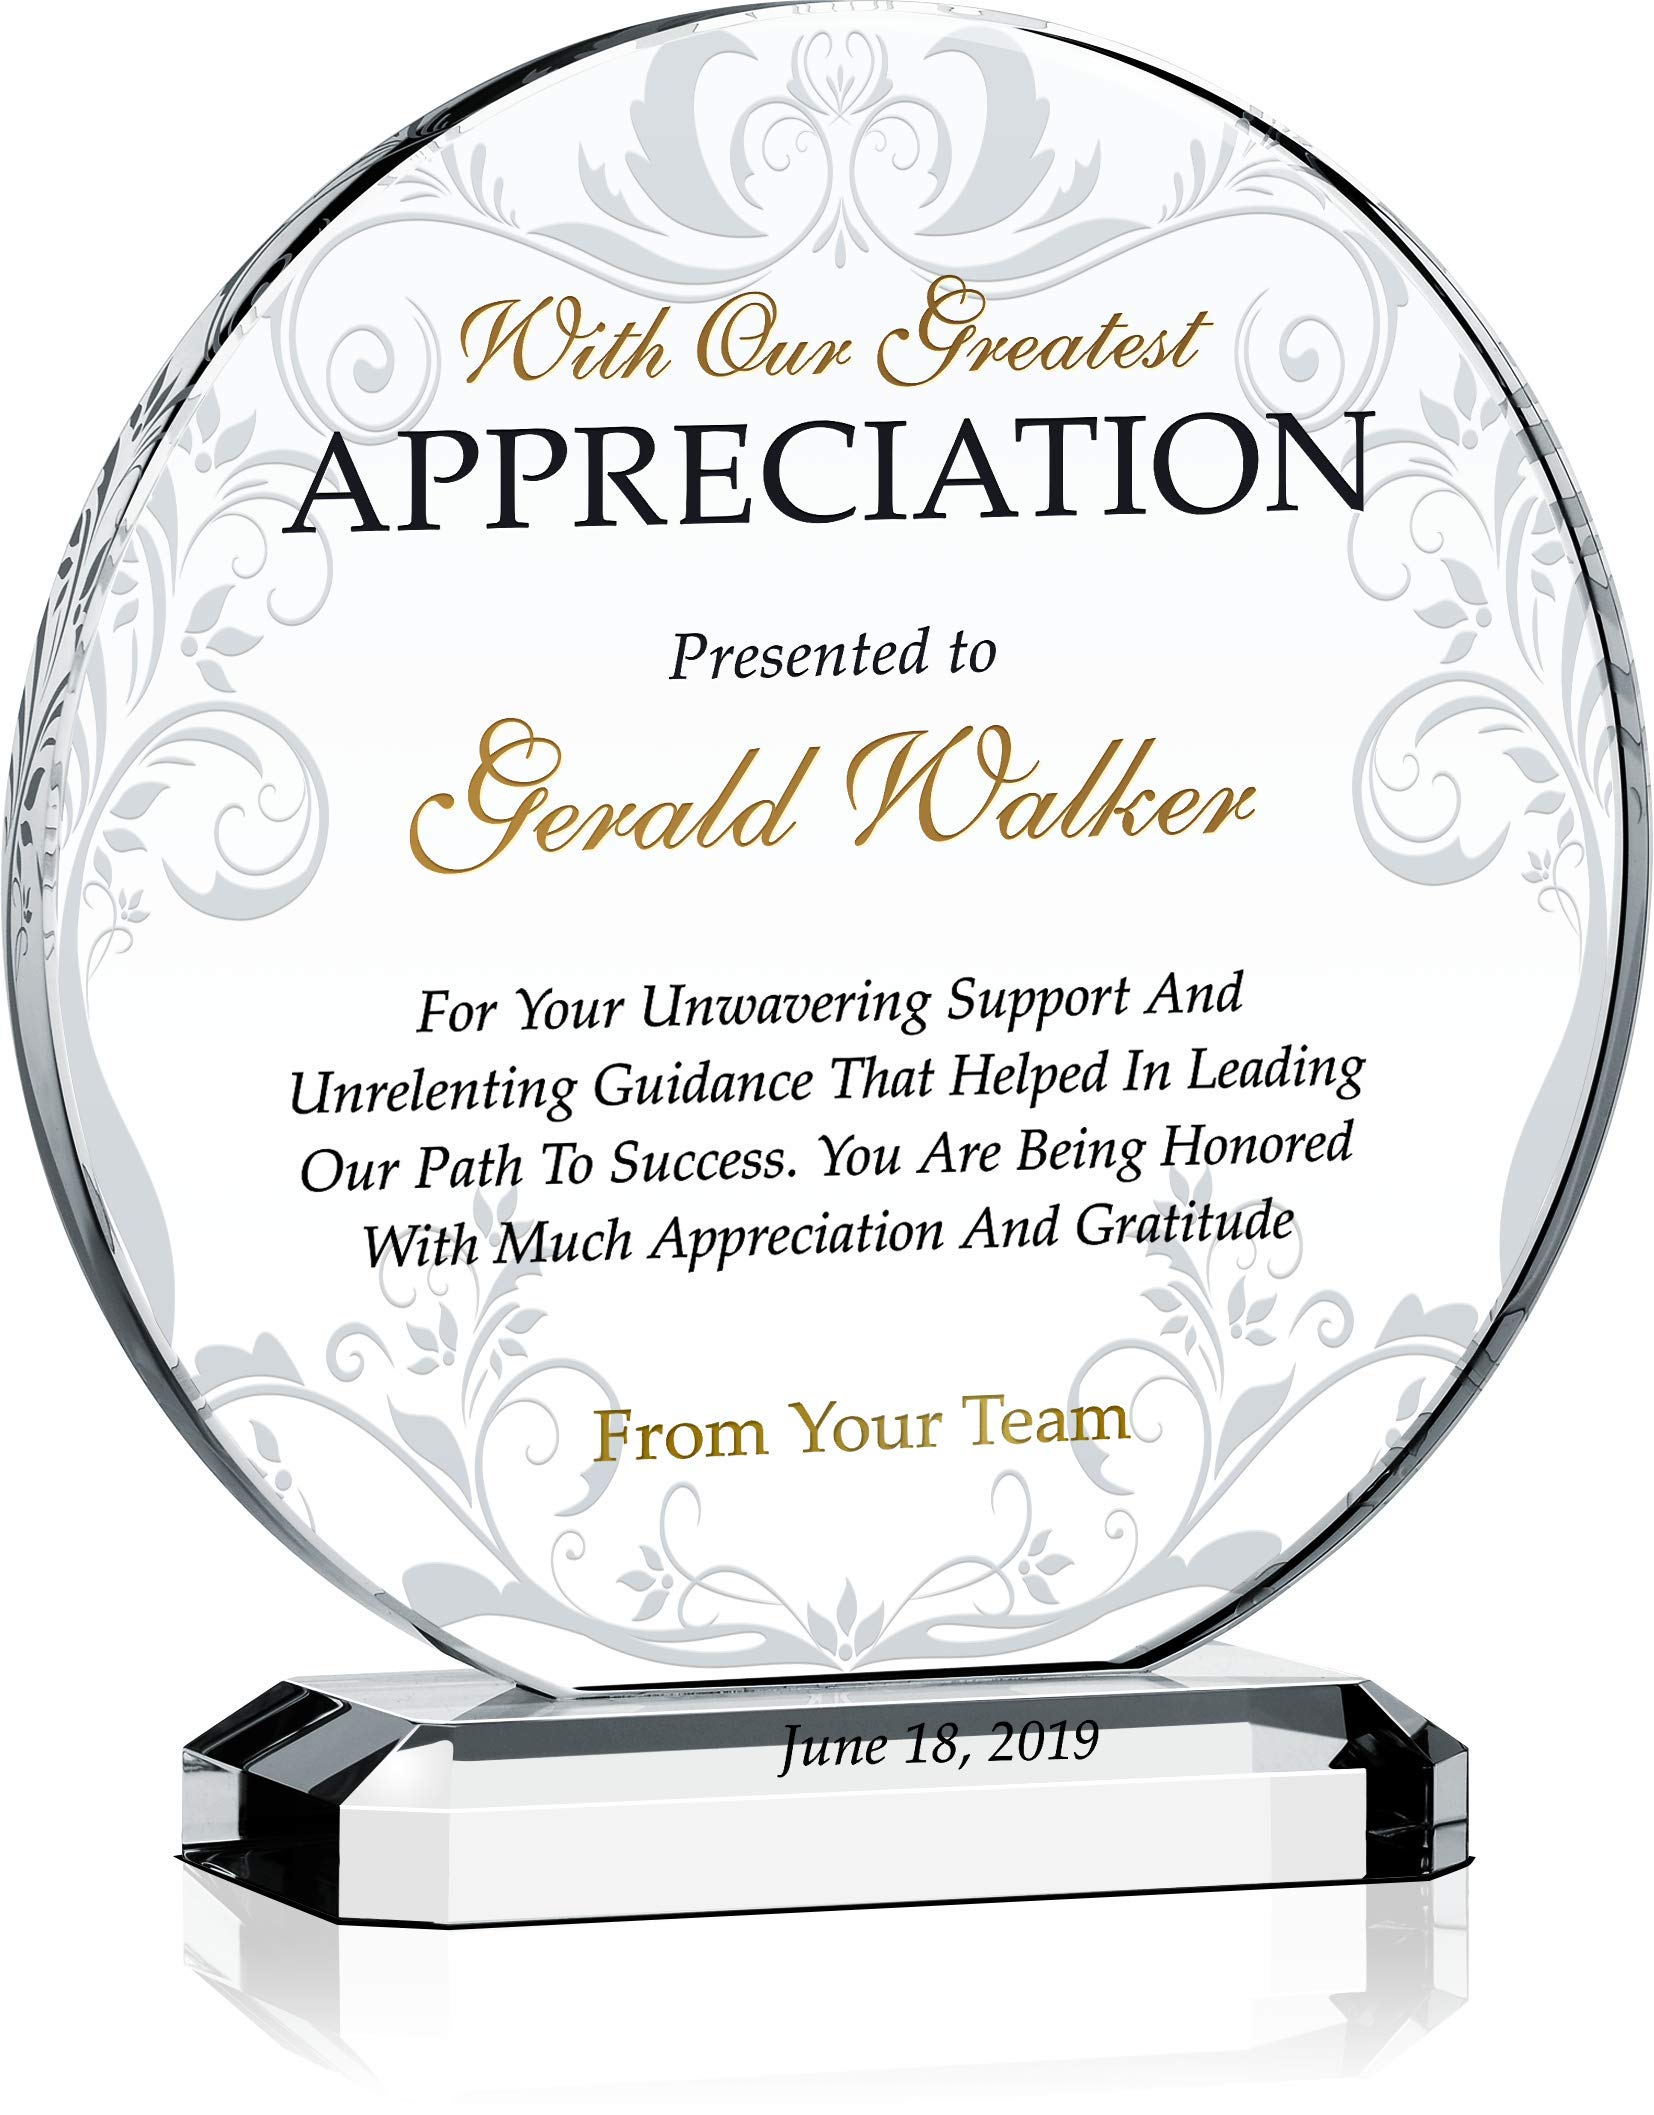 Crystal Central Personalized Appreciation Award Plaque for Mentor, Coach, Boss, Manager, Board Member, Board Director, Customized with Recipient Name and Date, Unique Thank You Gift Plaque (L - 8'') by Crystal Central